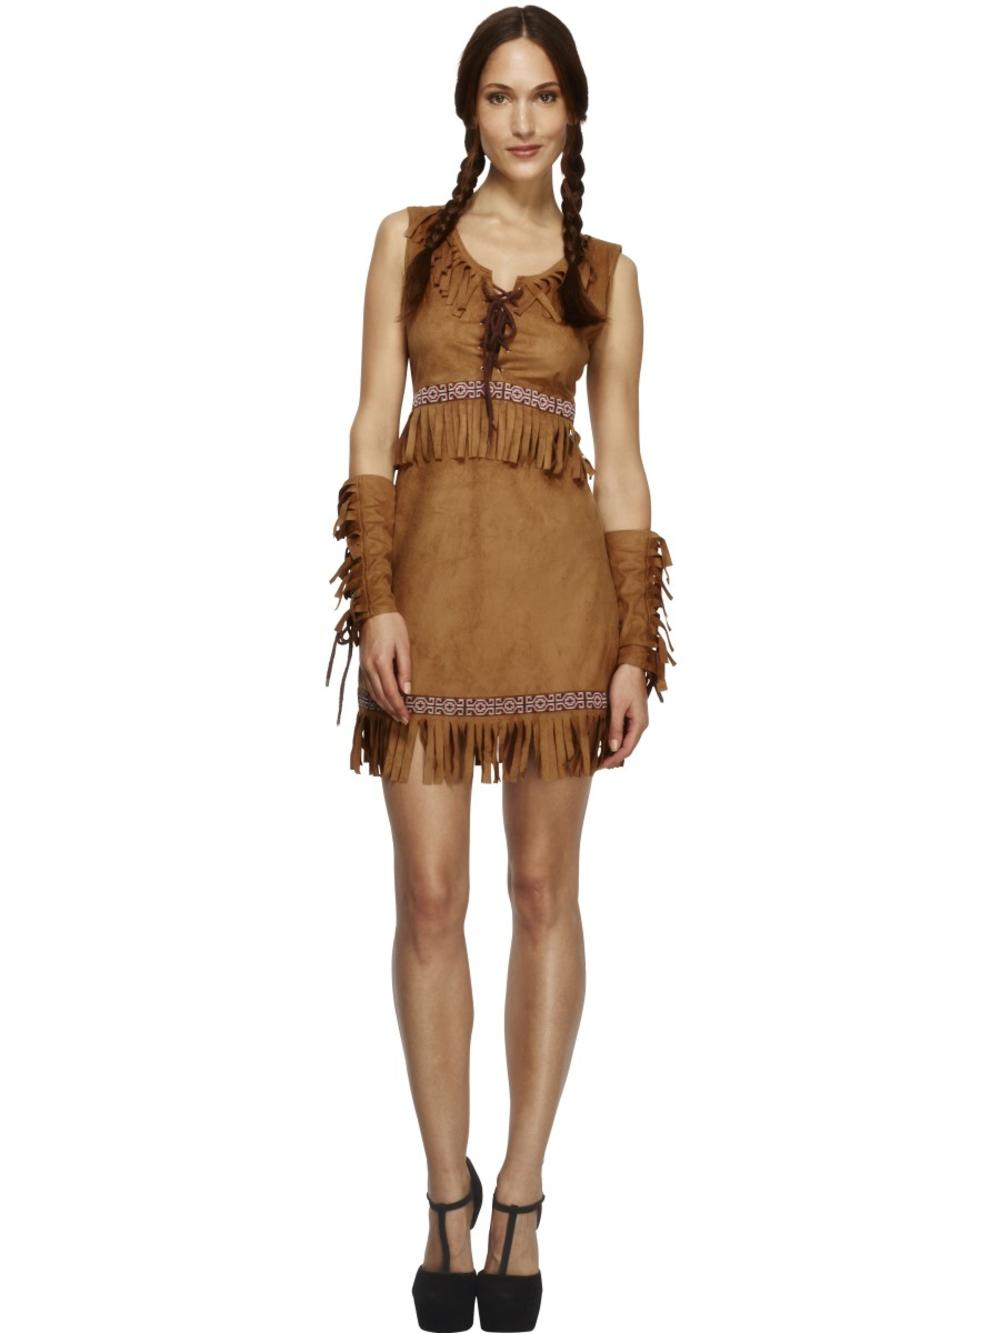 Fever Pocahontas Ladies Fancy Dress Native American Indian Womens Adults Costume